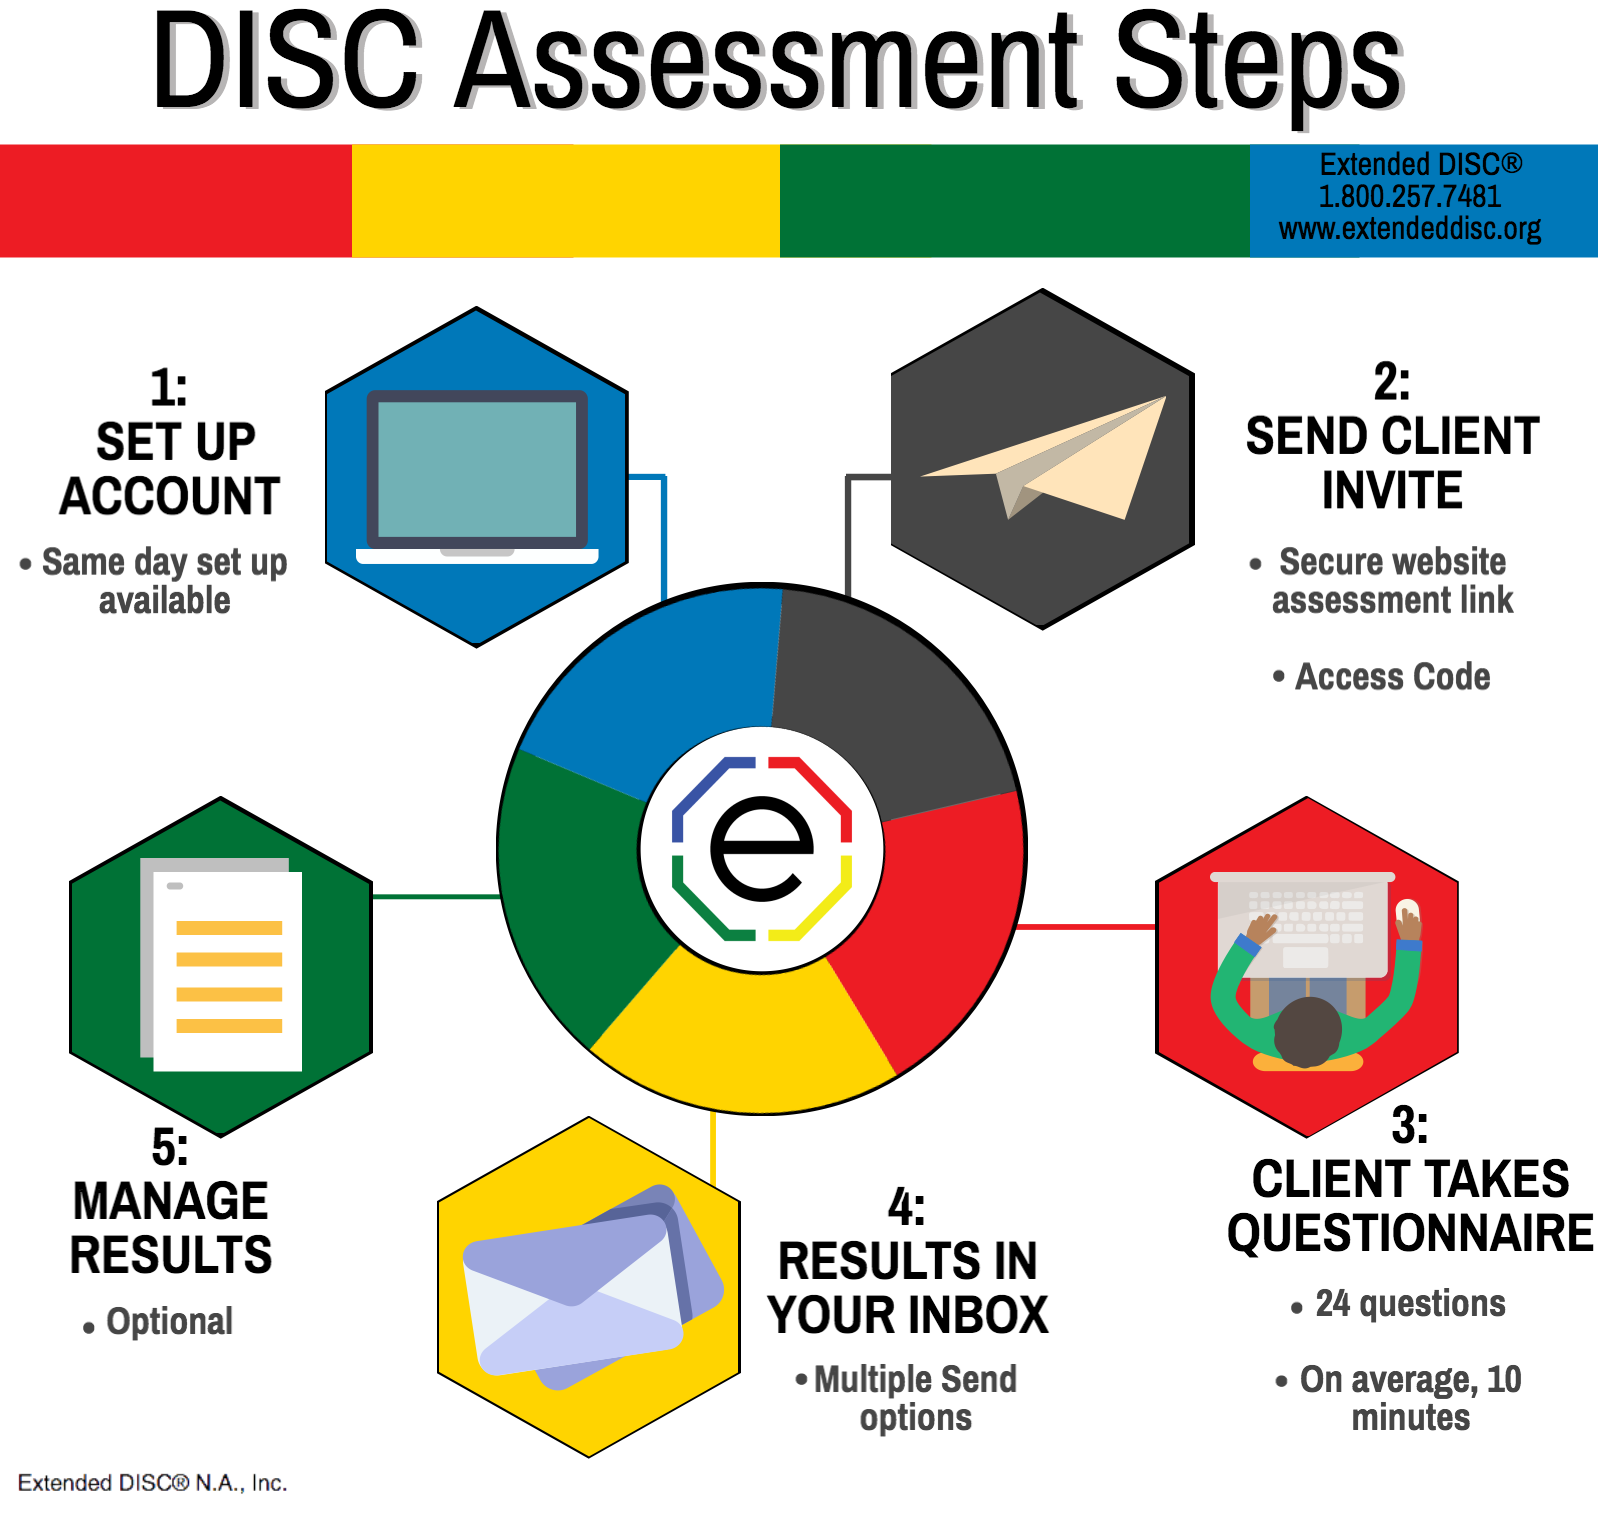 DISC Assessments – The DISC Test